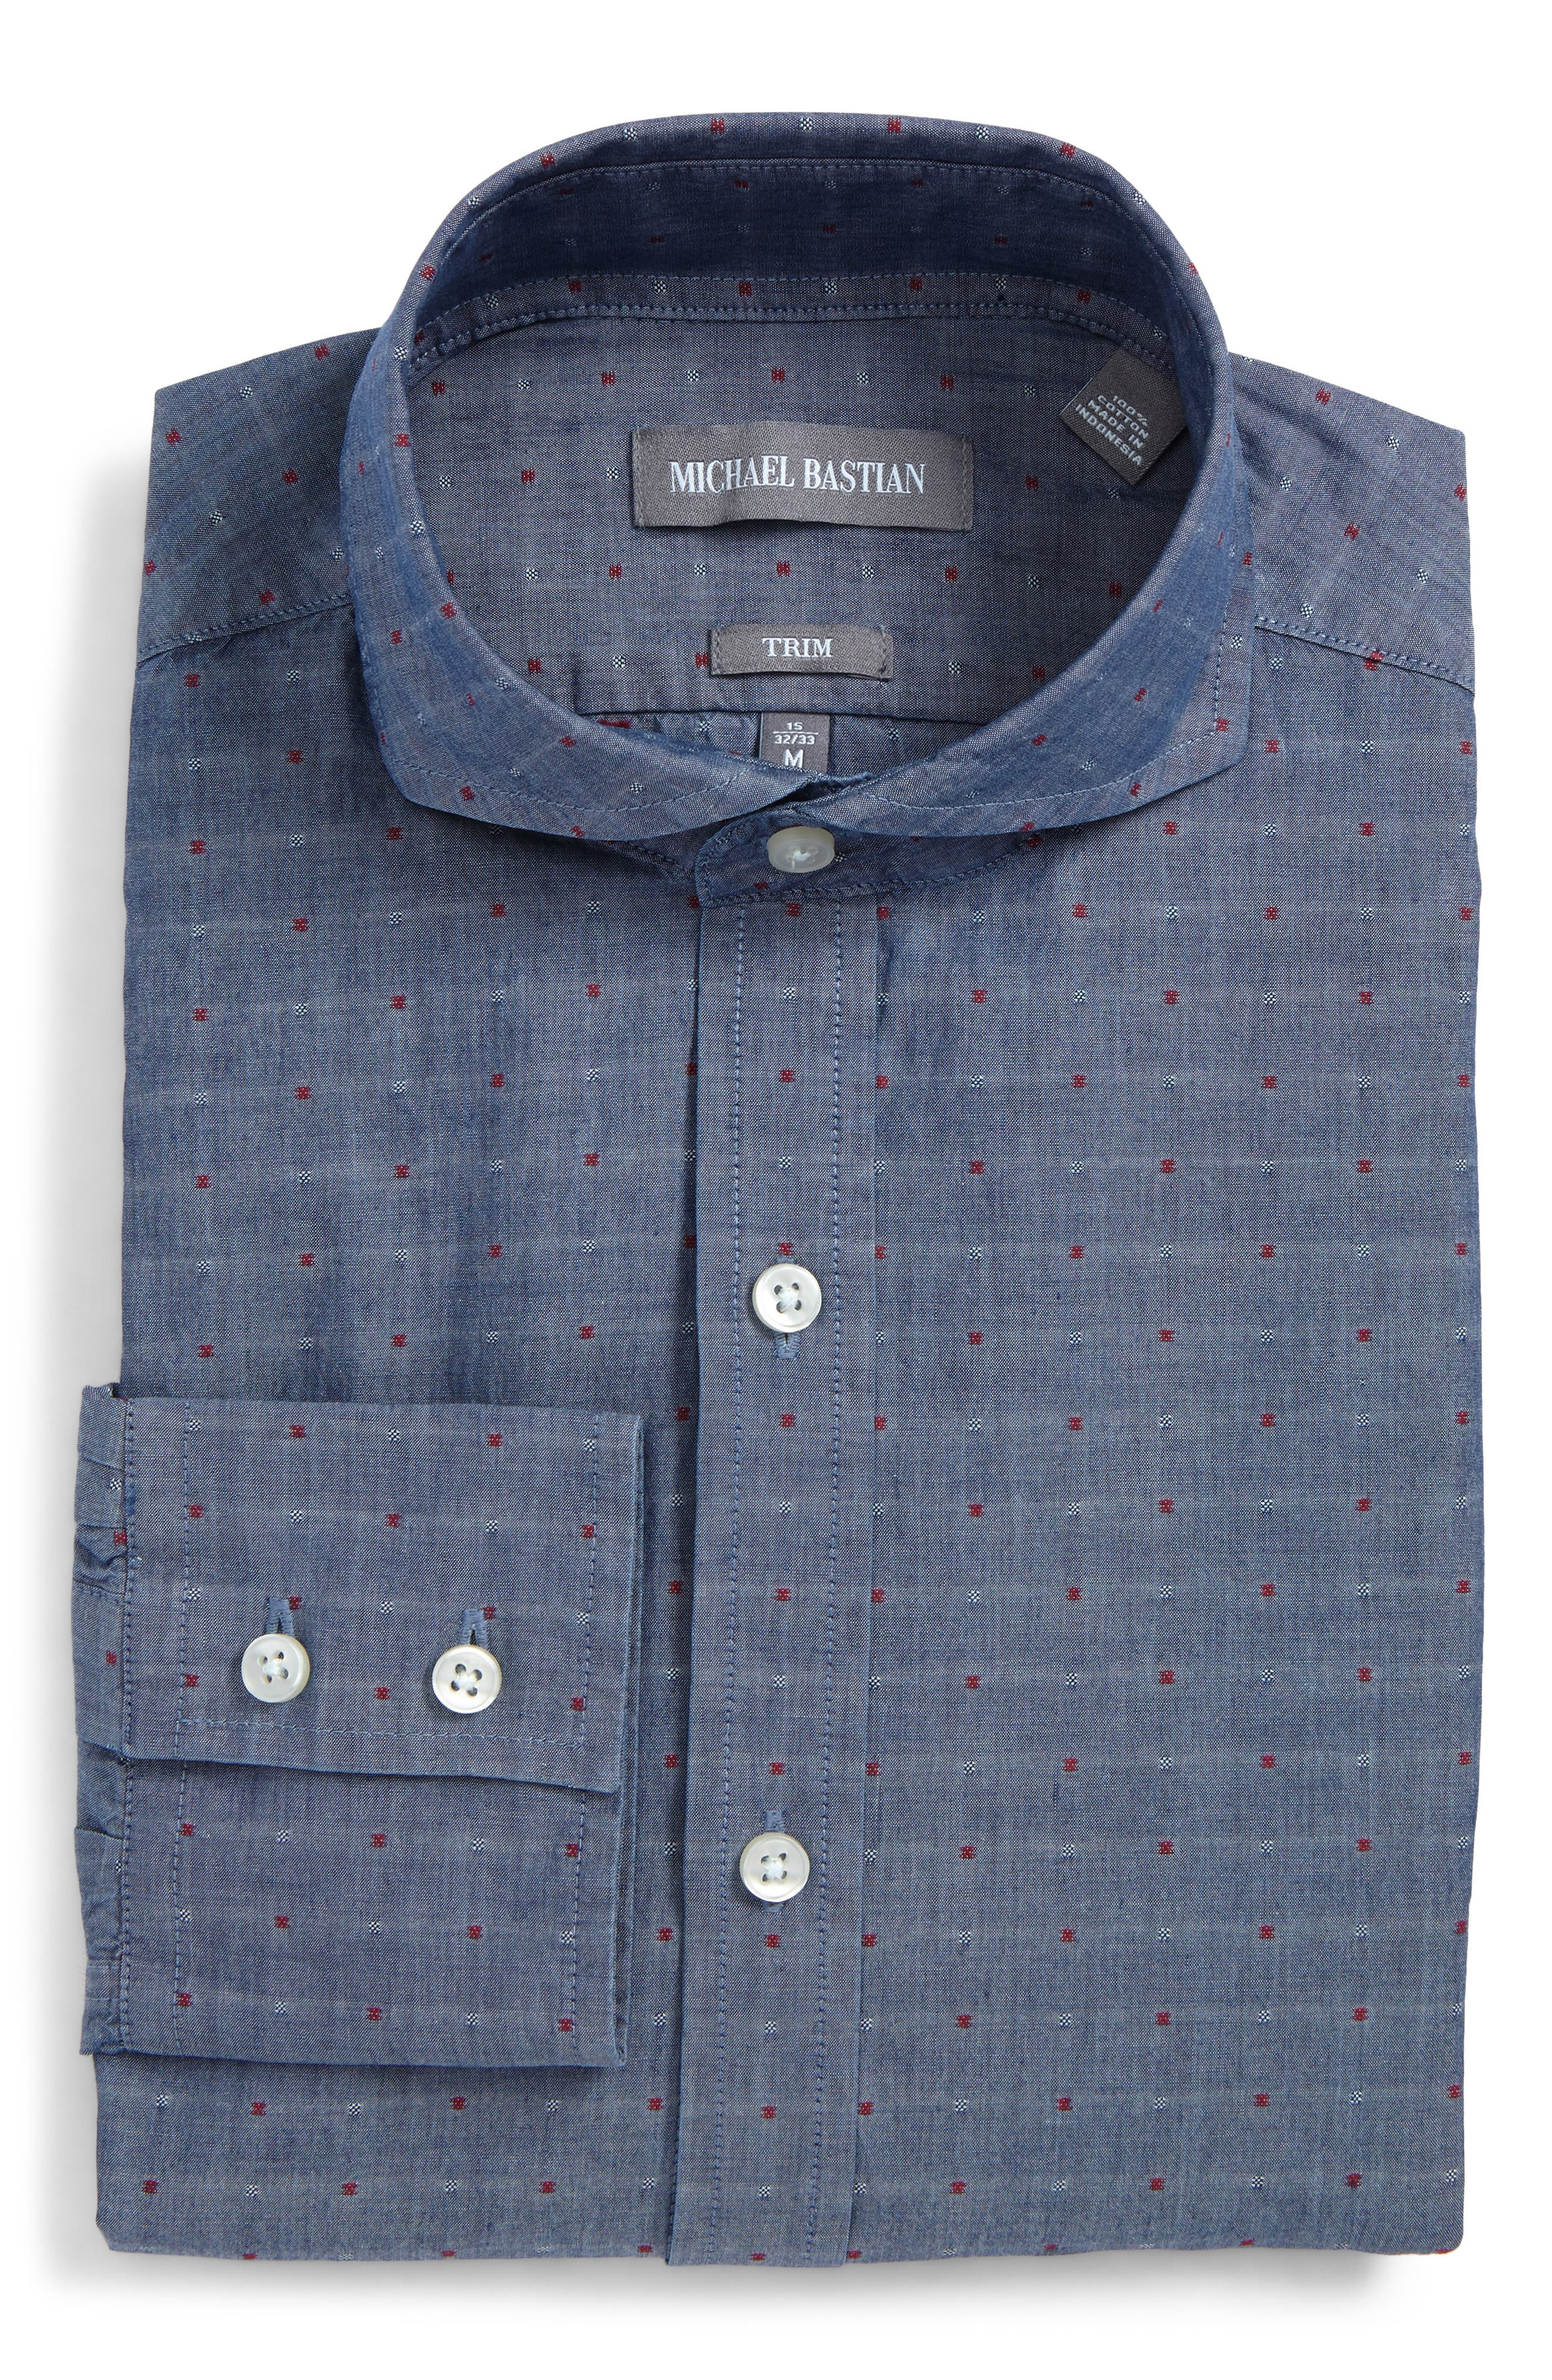 Main Image - Michael Bastian Trim Fit Dot Dress Shirt